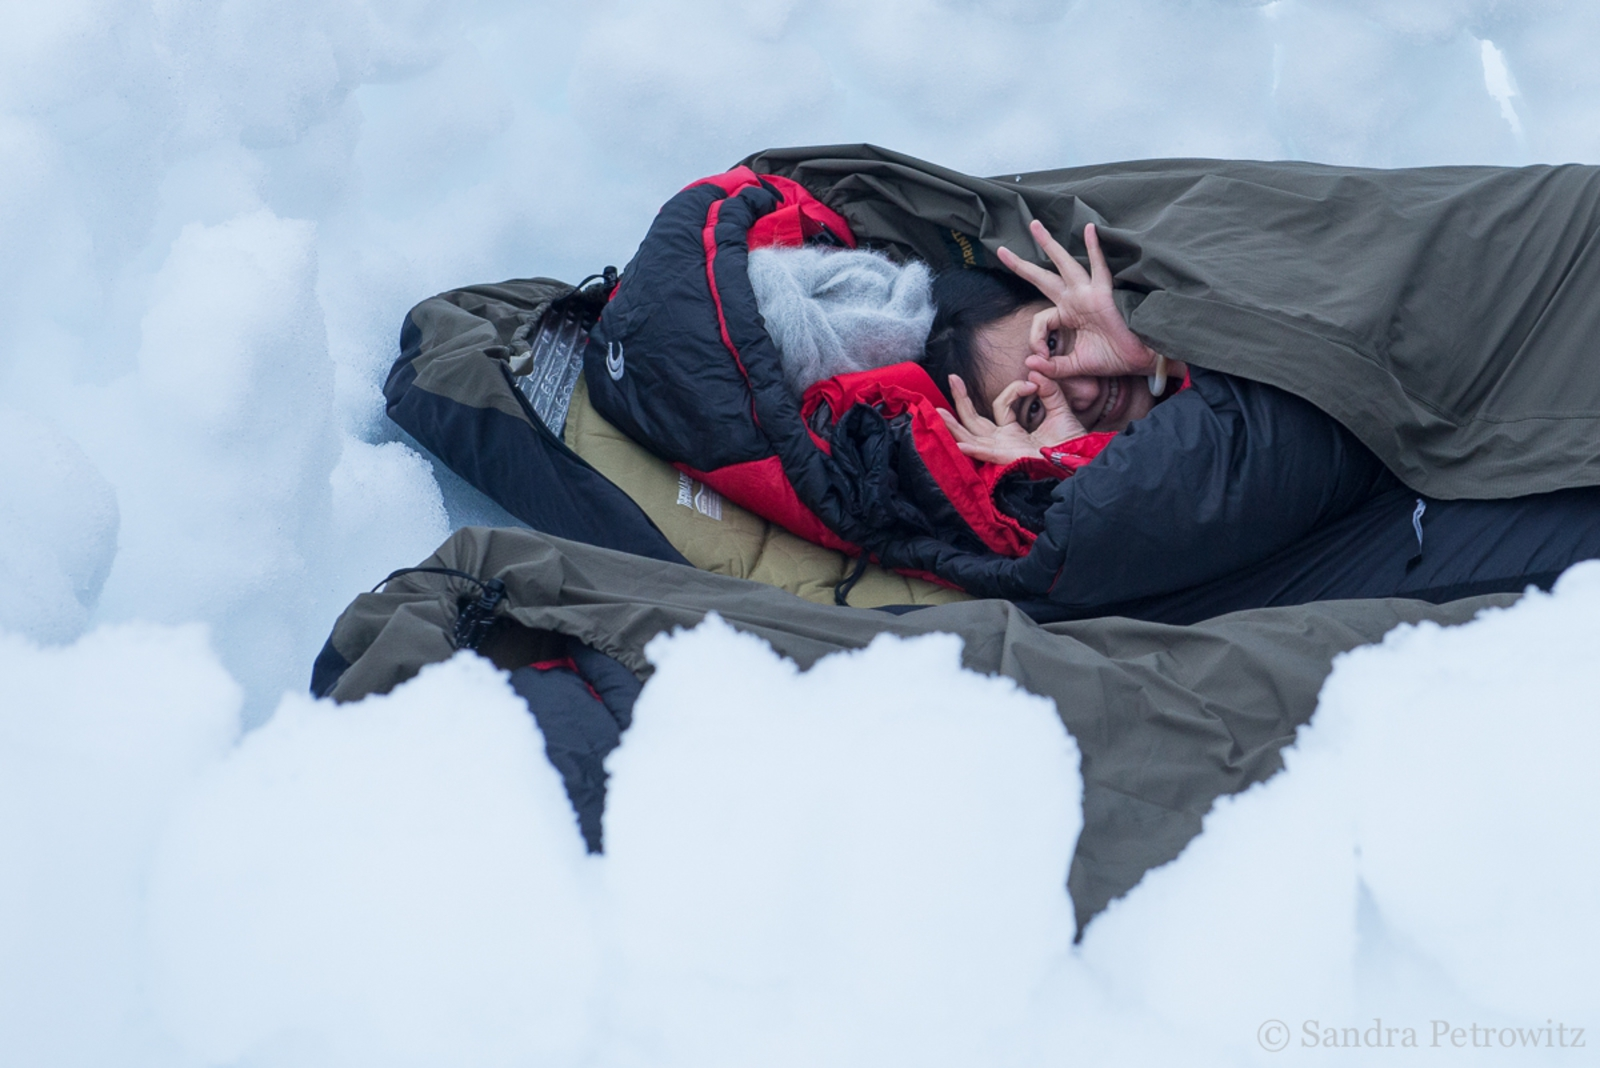 A traveller in a bivvy bag in the snow on the Antarctic Peninsula